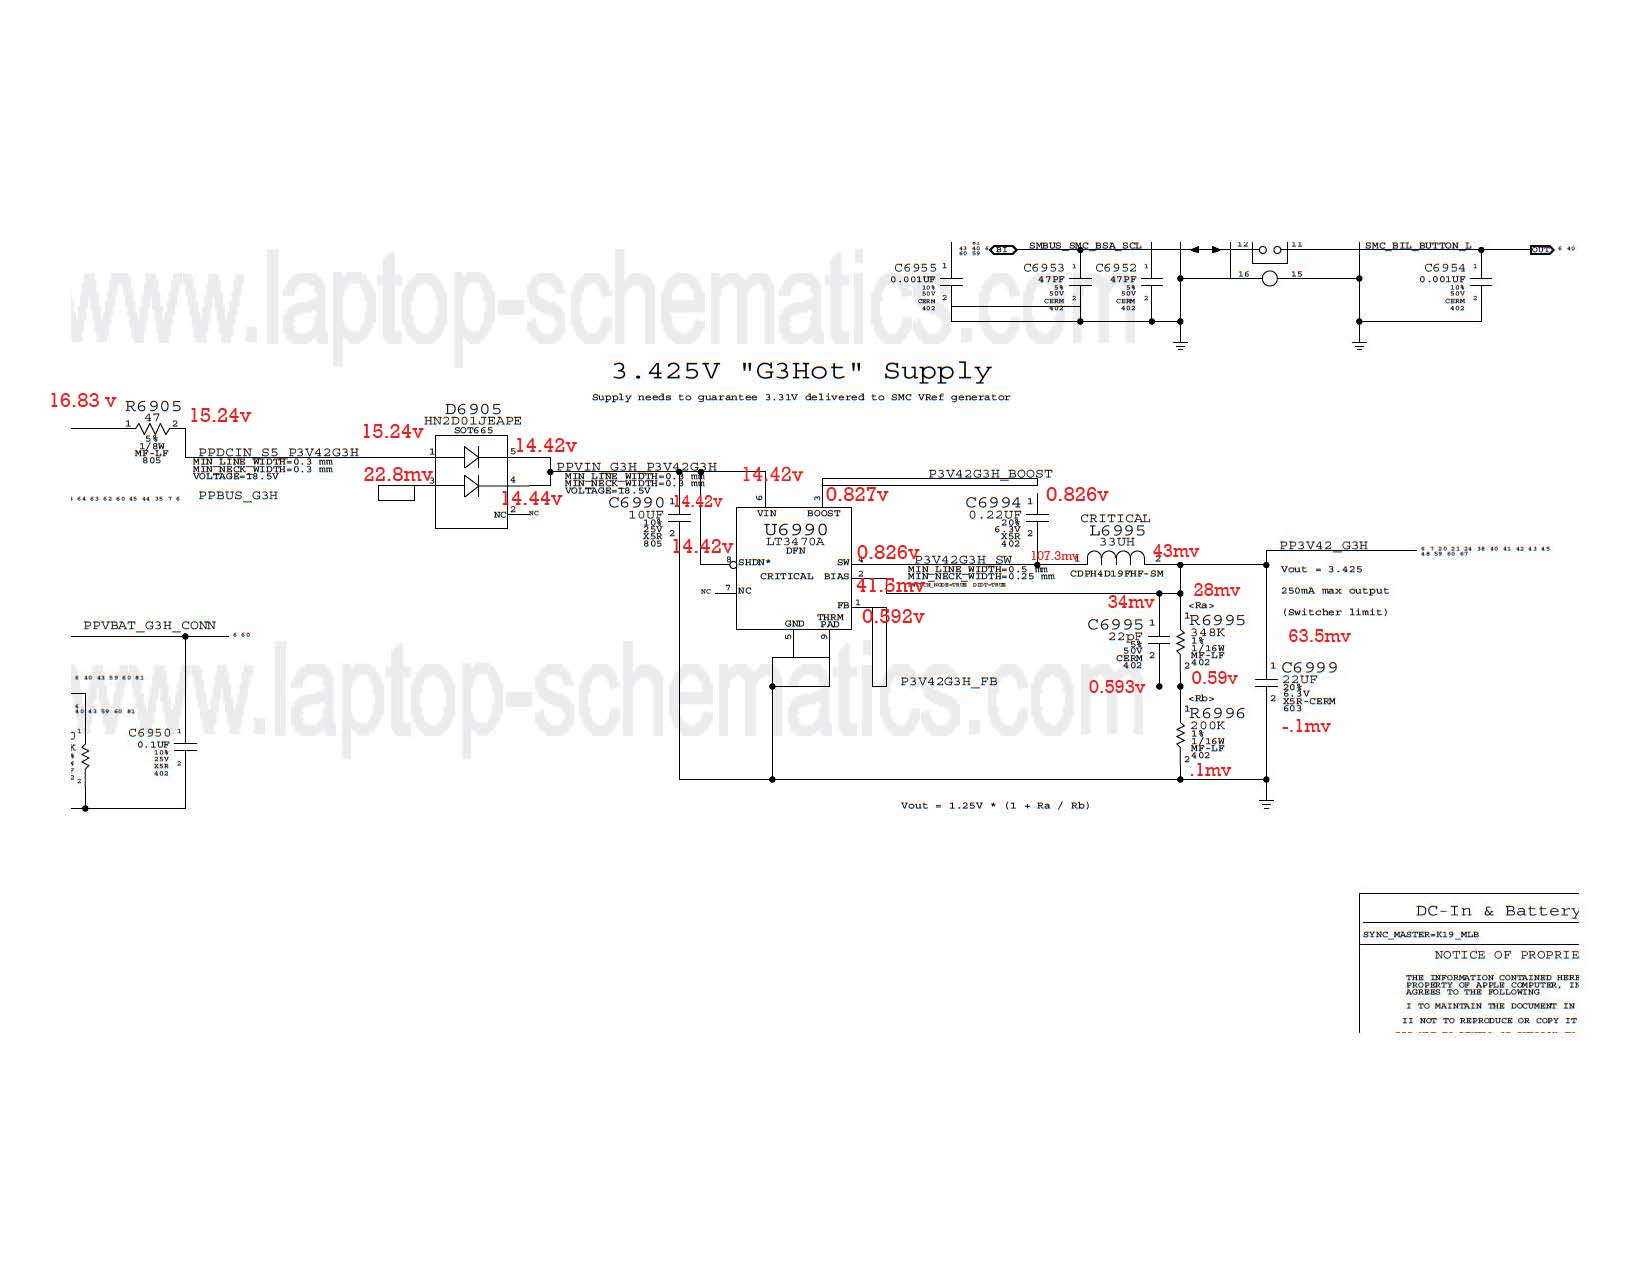 Smc Issue On Mbp 13 Hardware Troubleshooting Guide Page 52 Laptop Repair Manual Schematics Boardview Datasheet Block Diagram Lb820 2533 3